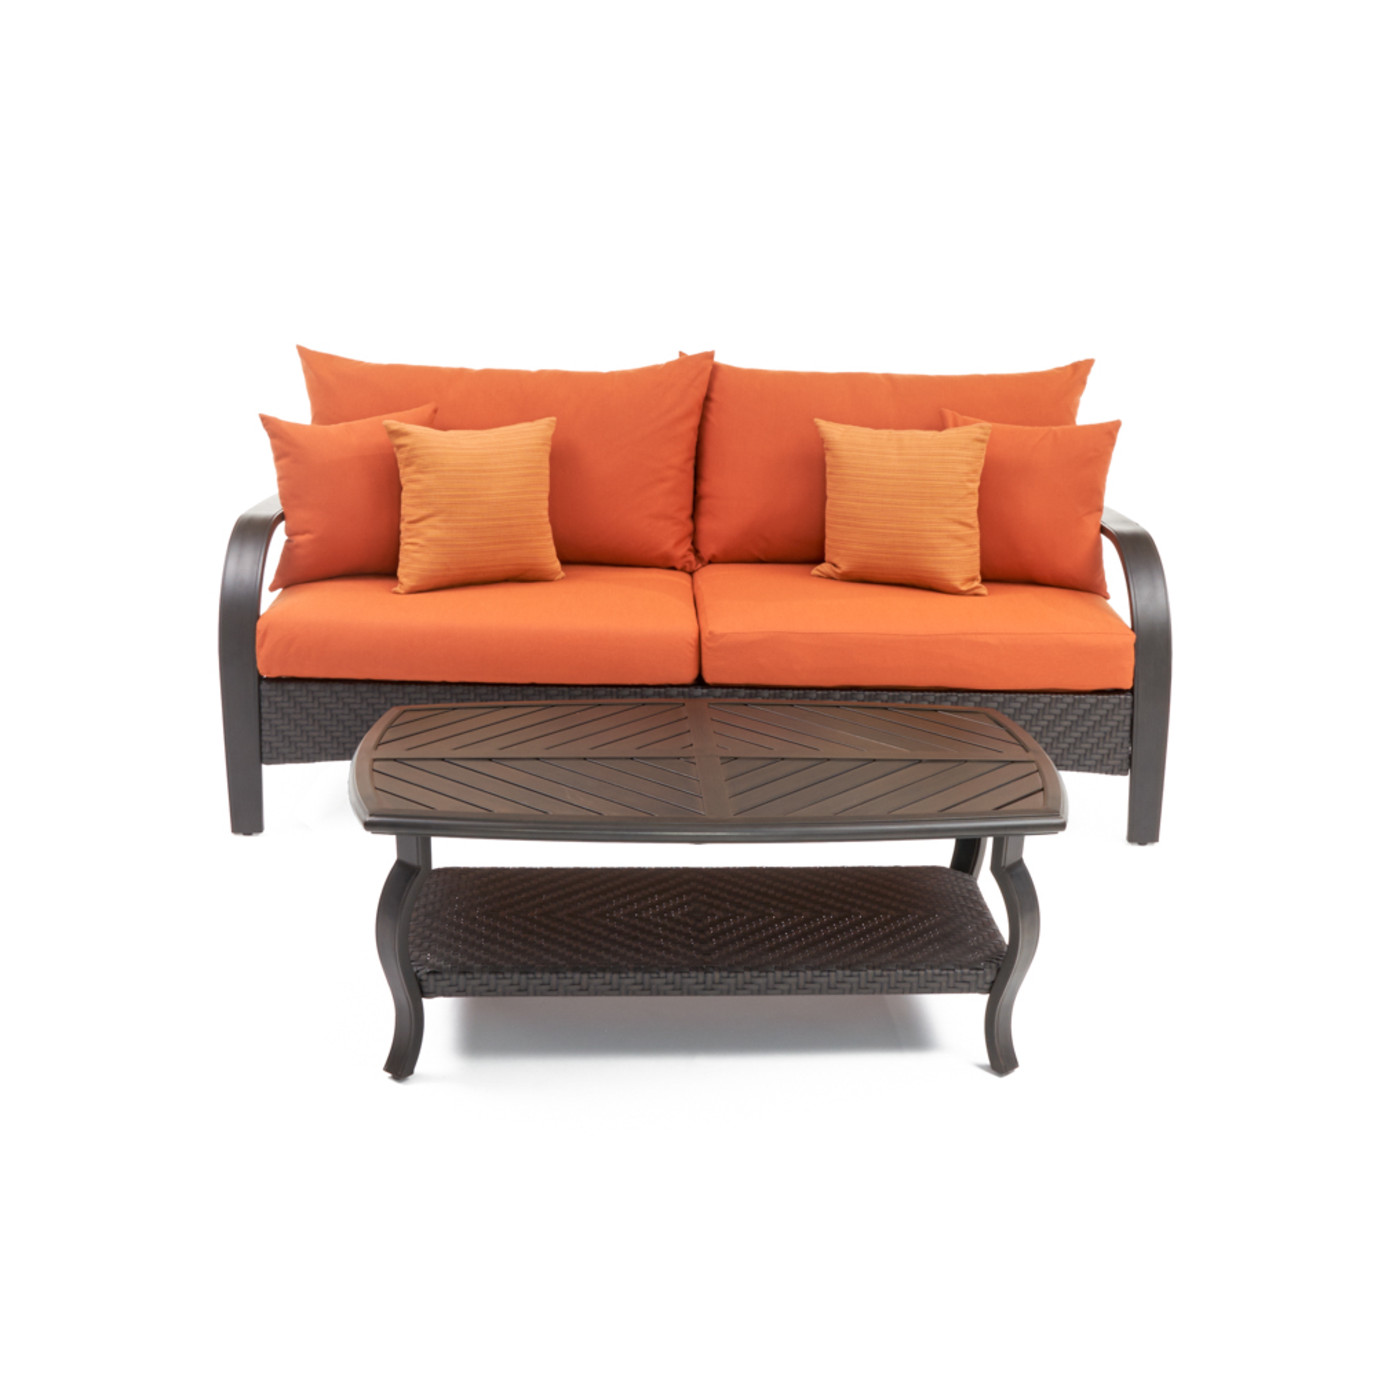 Barcelo™ Sofa & Coffee Table - Tikka Orange